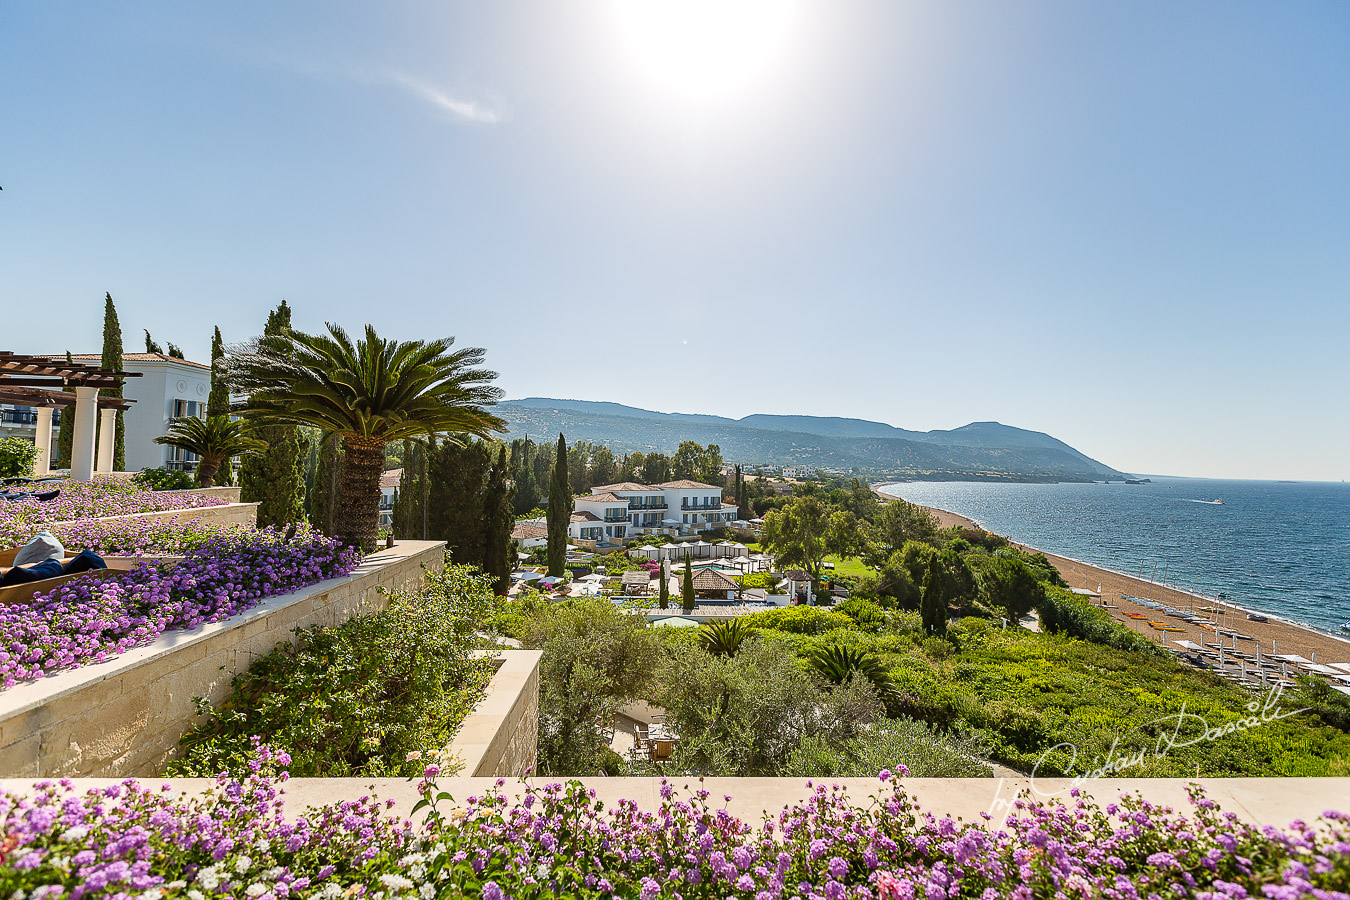 Breathtaking view at the beautiful Anassa Hotel photographed by Cyprus Photographer Cristian Dascalu.